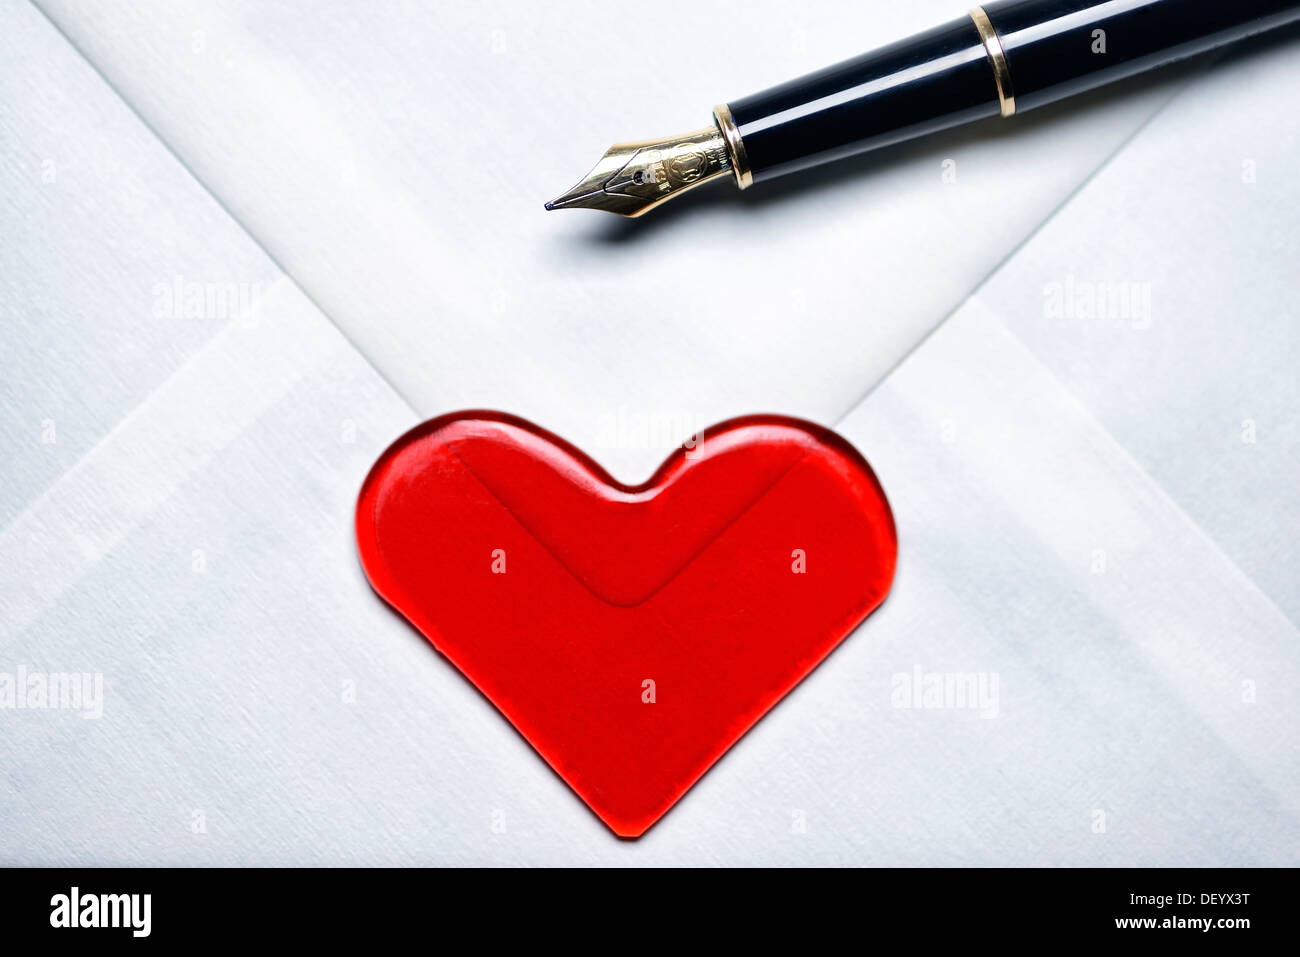 Love letter with a heart and a fountain pen, Germany - Stock Image